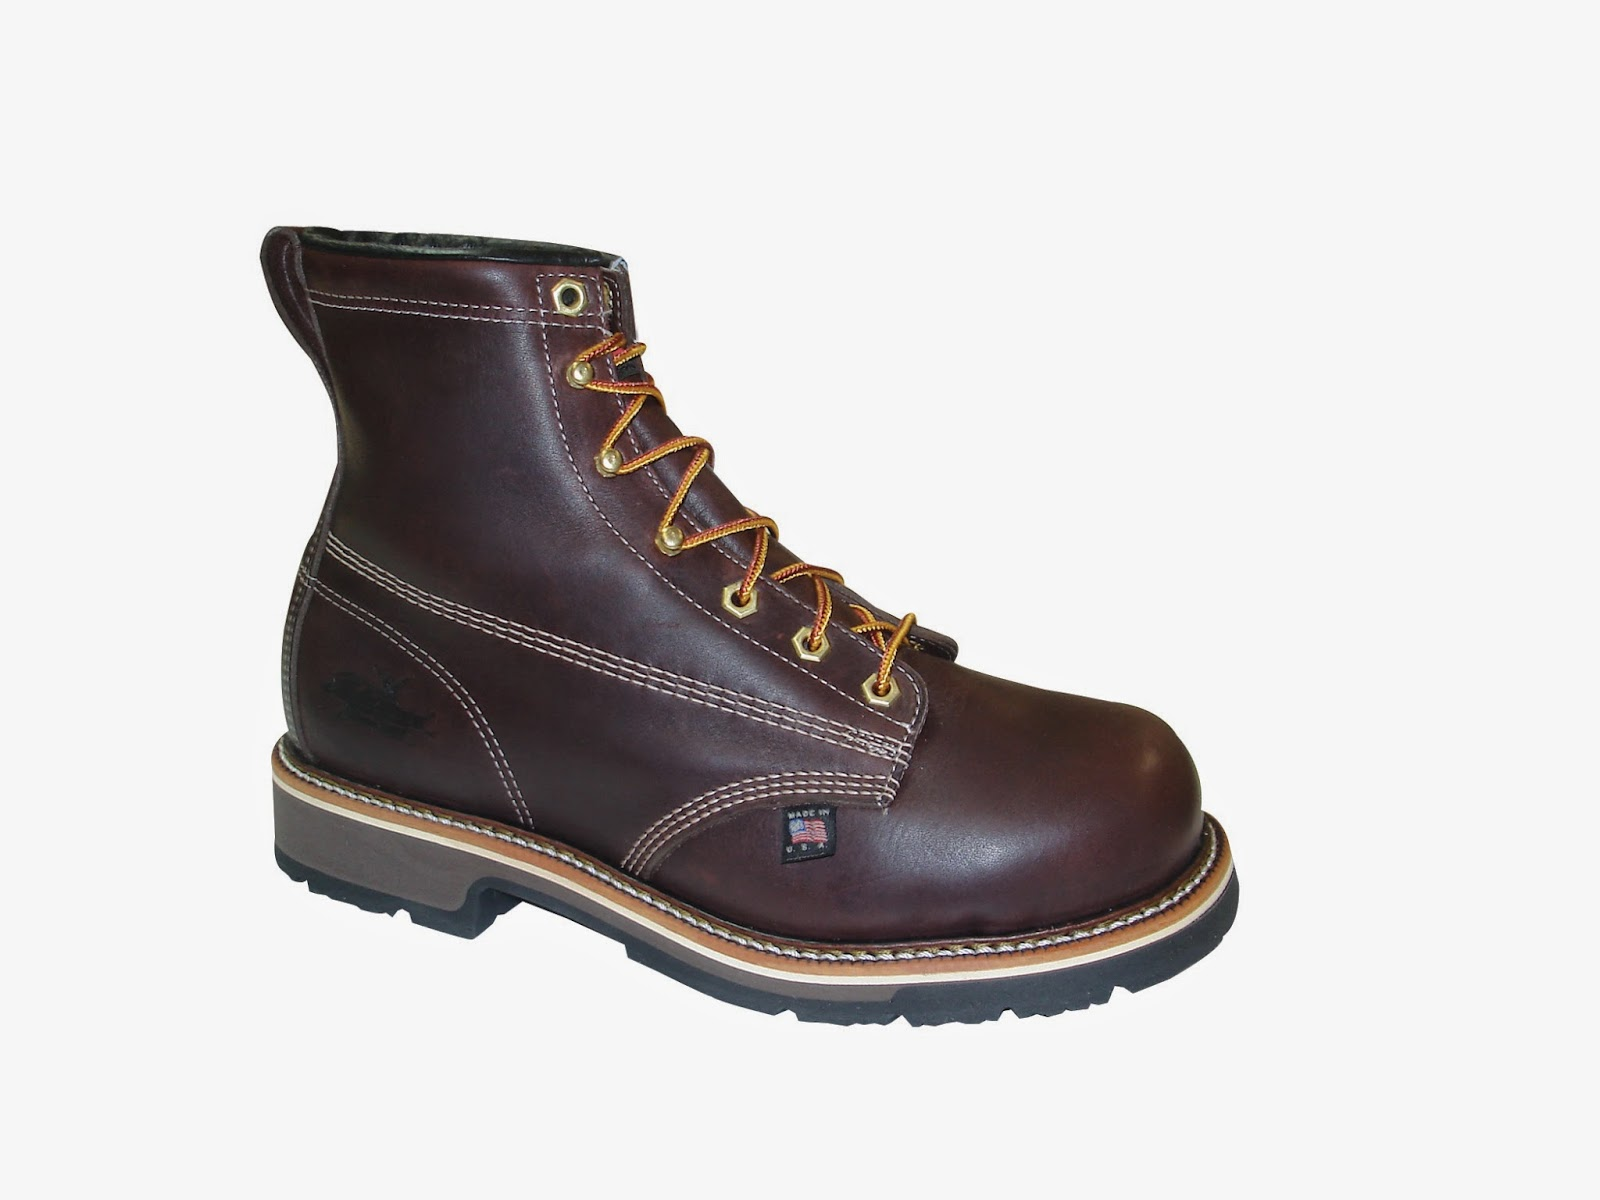 Image of Thorogood Work Boot